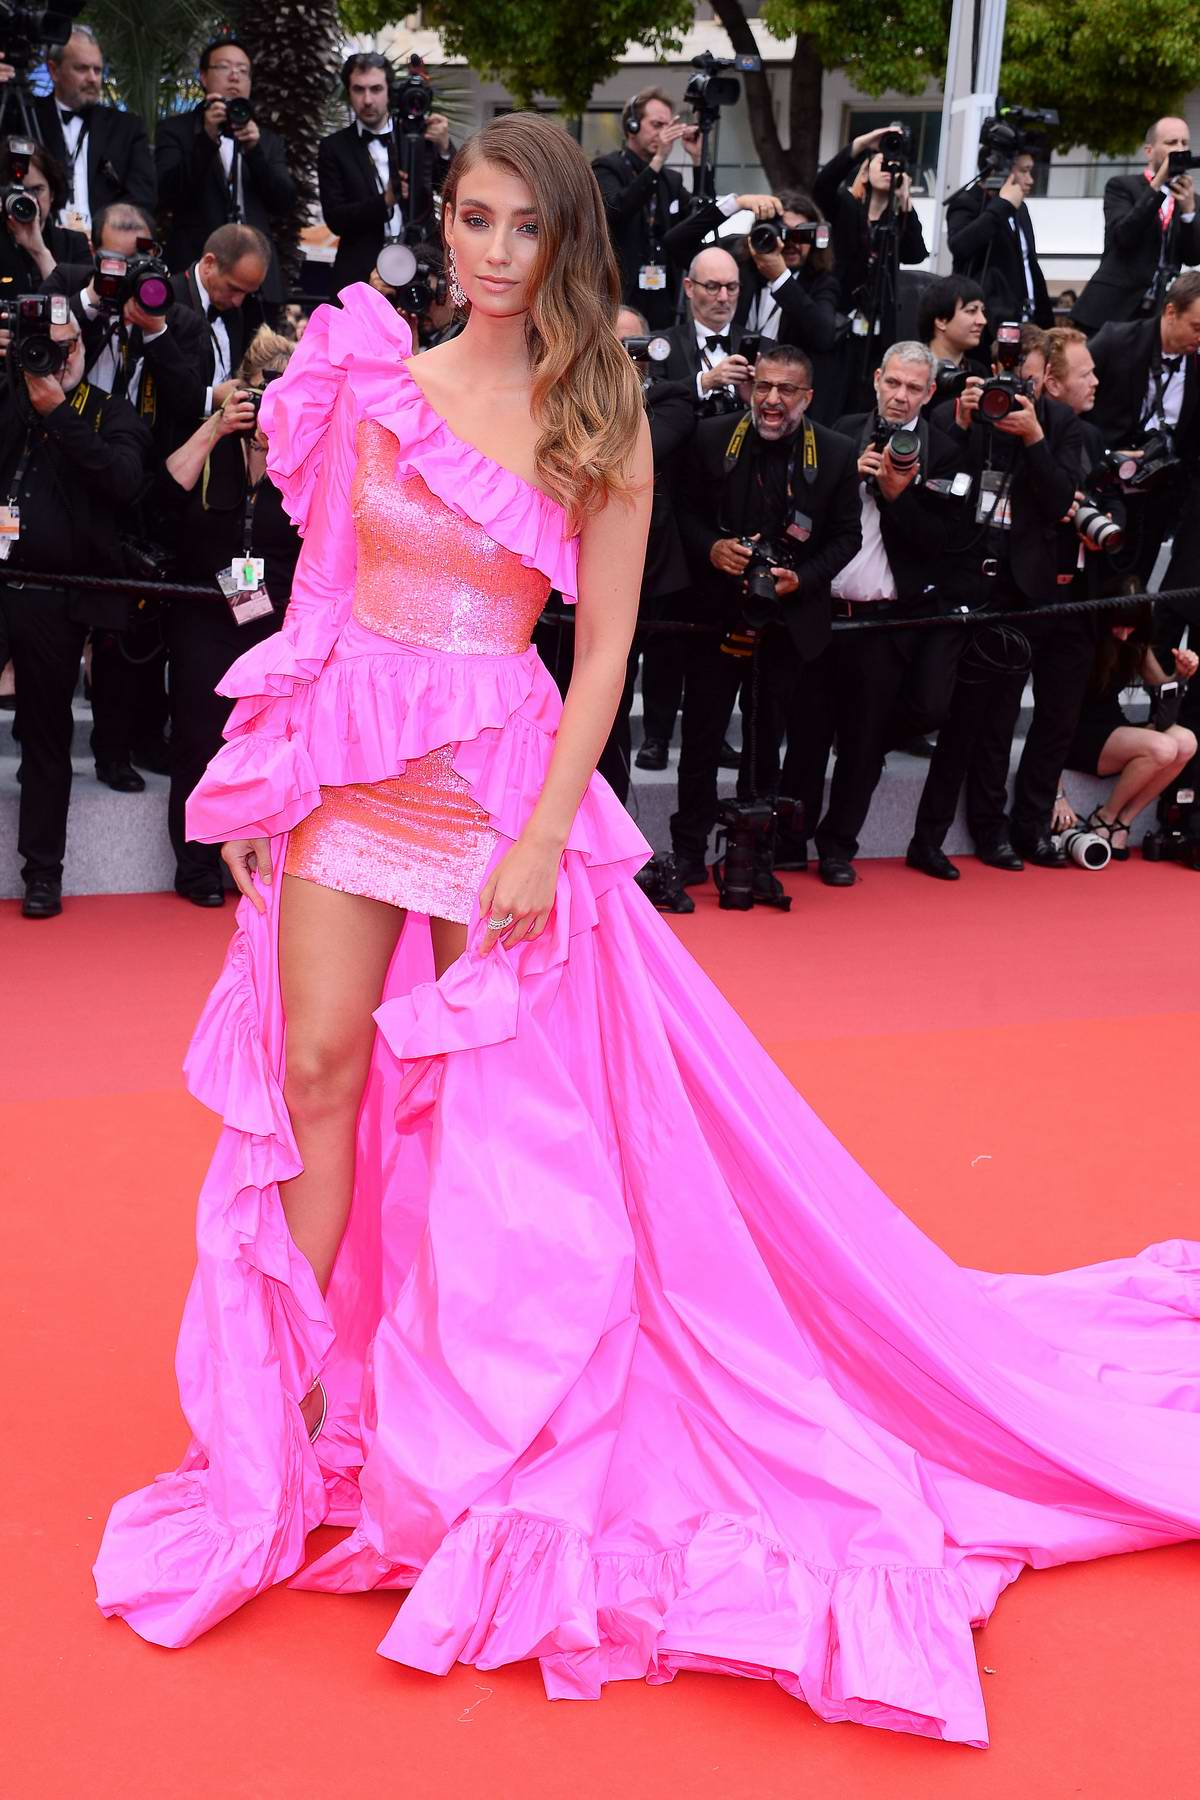 Lorena Rae attends the screening of 'Oh Mercy! (Roubaix, une Lumiere)' during the 72nd annual Cannes Film Festival in Cannes, France